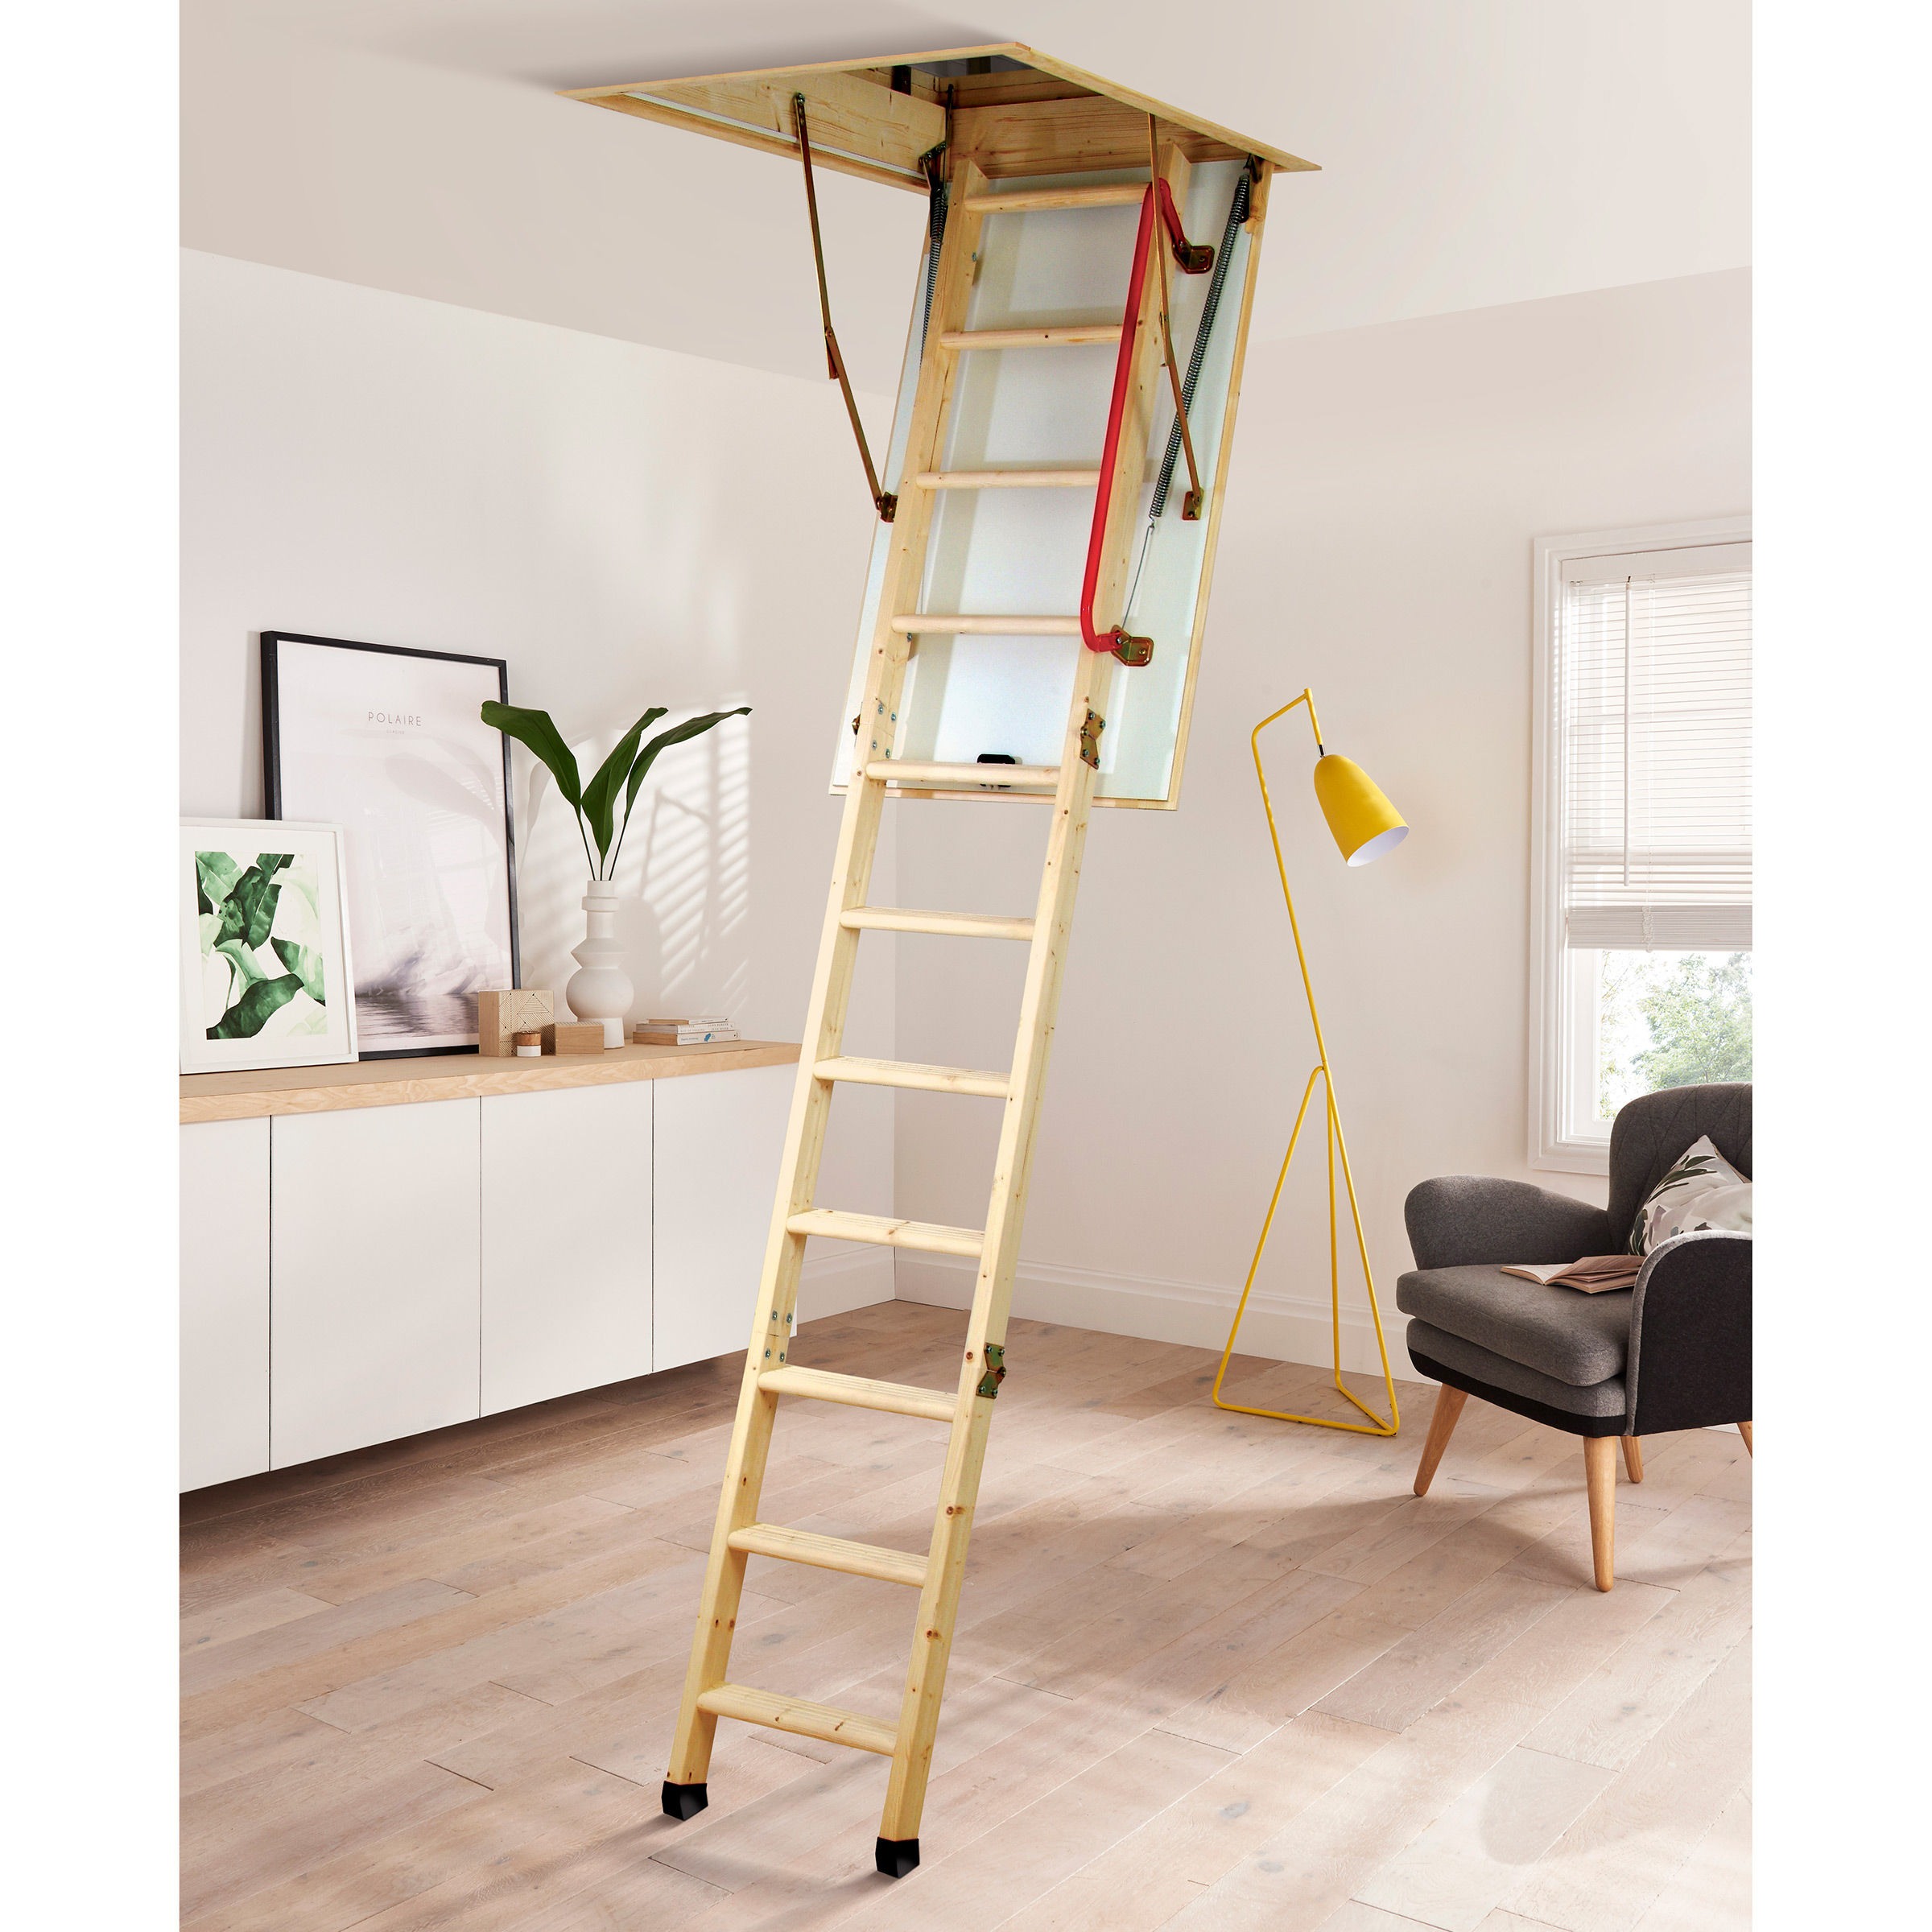 Youngman 345350 Eco S Line 3 Section Timber Folding Loft Ladder